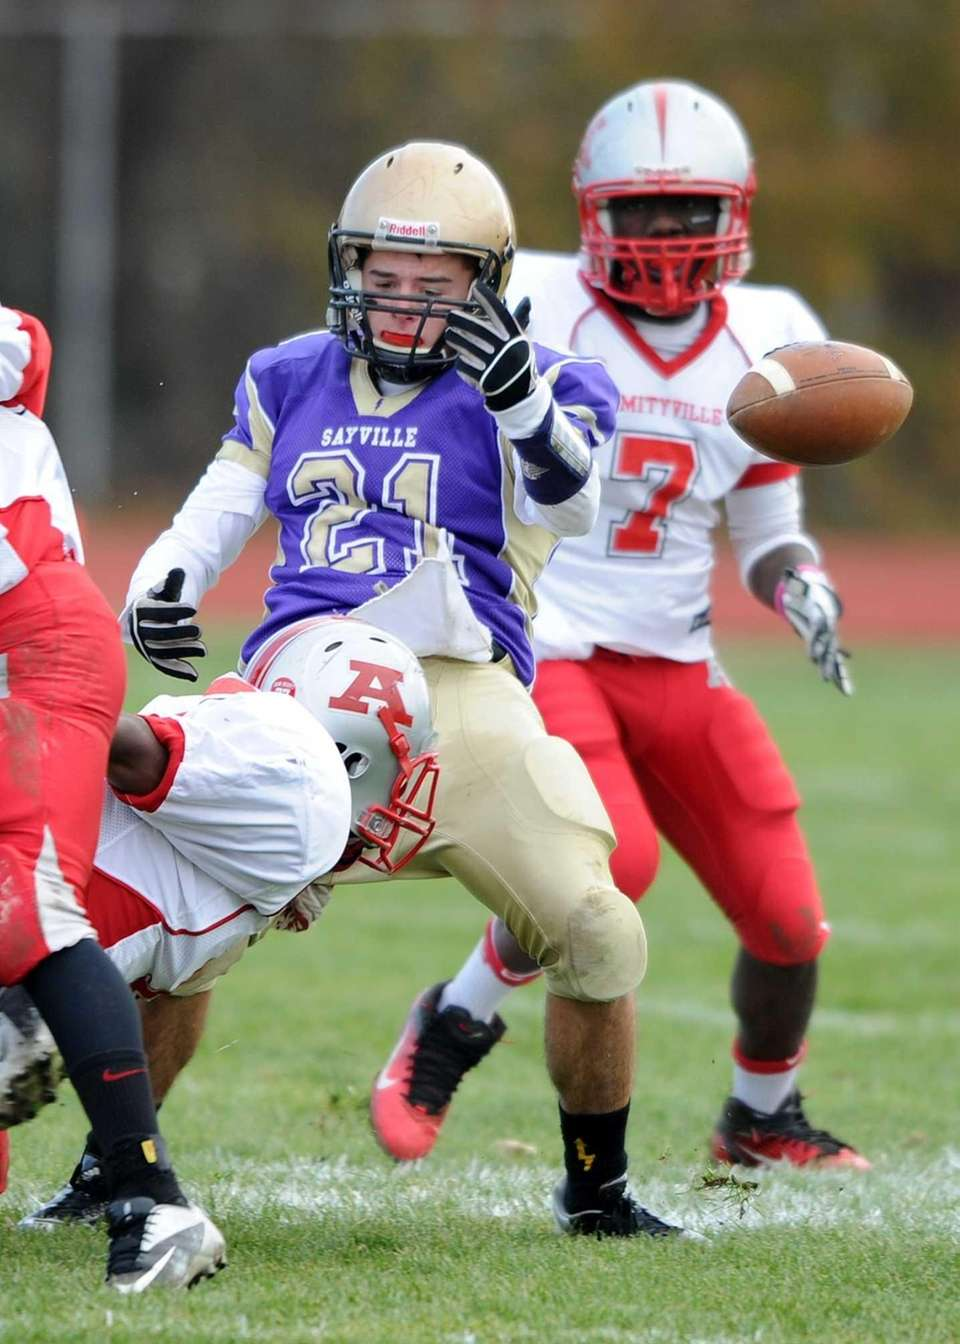 Sayville's Matt Selts loses the ball after a